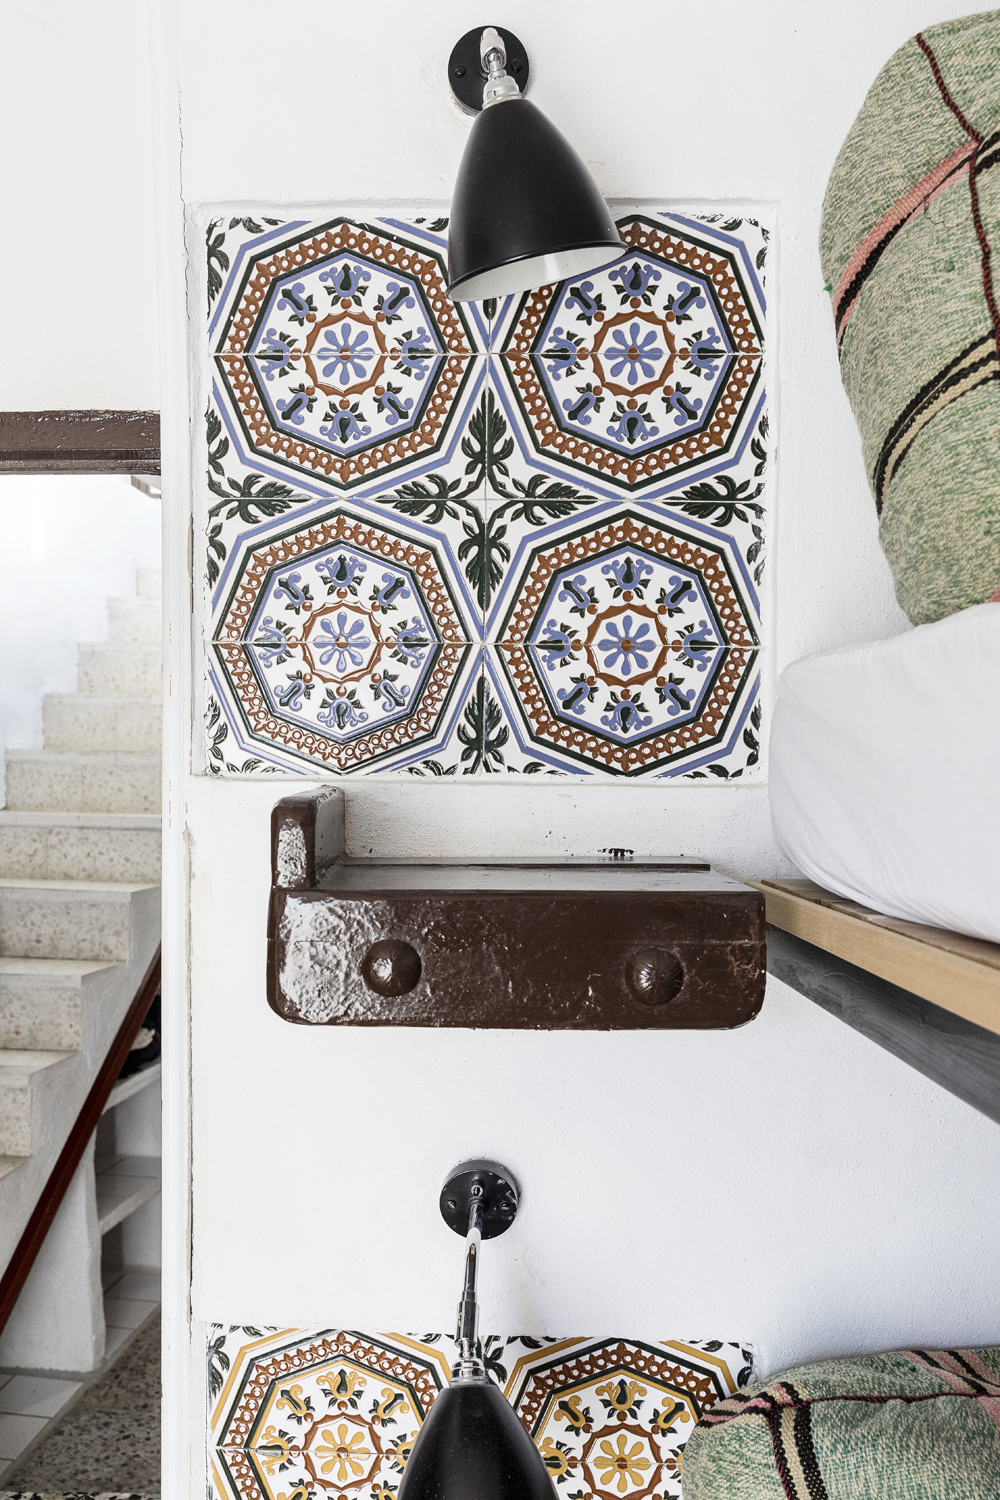 Canillas de Aceituno, Spain, holiday, rent, apartment, townhouse, rental, vacationhome, home, interior, spanish, style, interiorphotography, interior design, photographer, Frida Steiner, Visualaddict, visualaddictfrida, colorful interior, tiles, moroccan